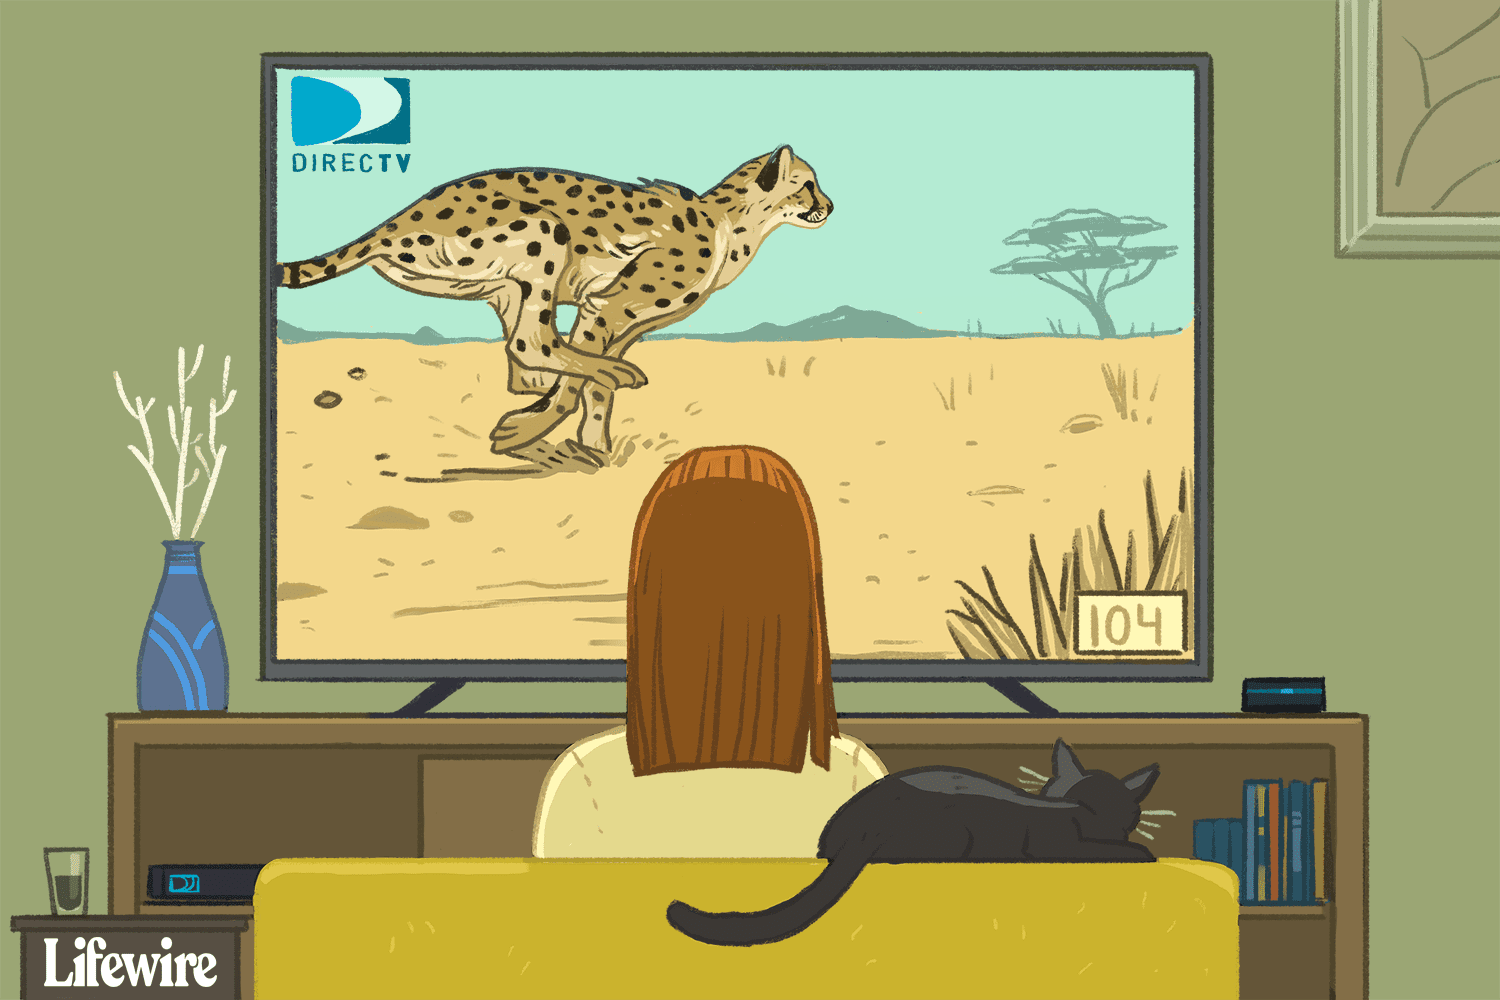 Illustration of a person watching DirecTV channel 104 on an HDT